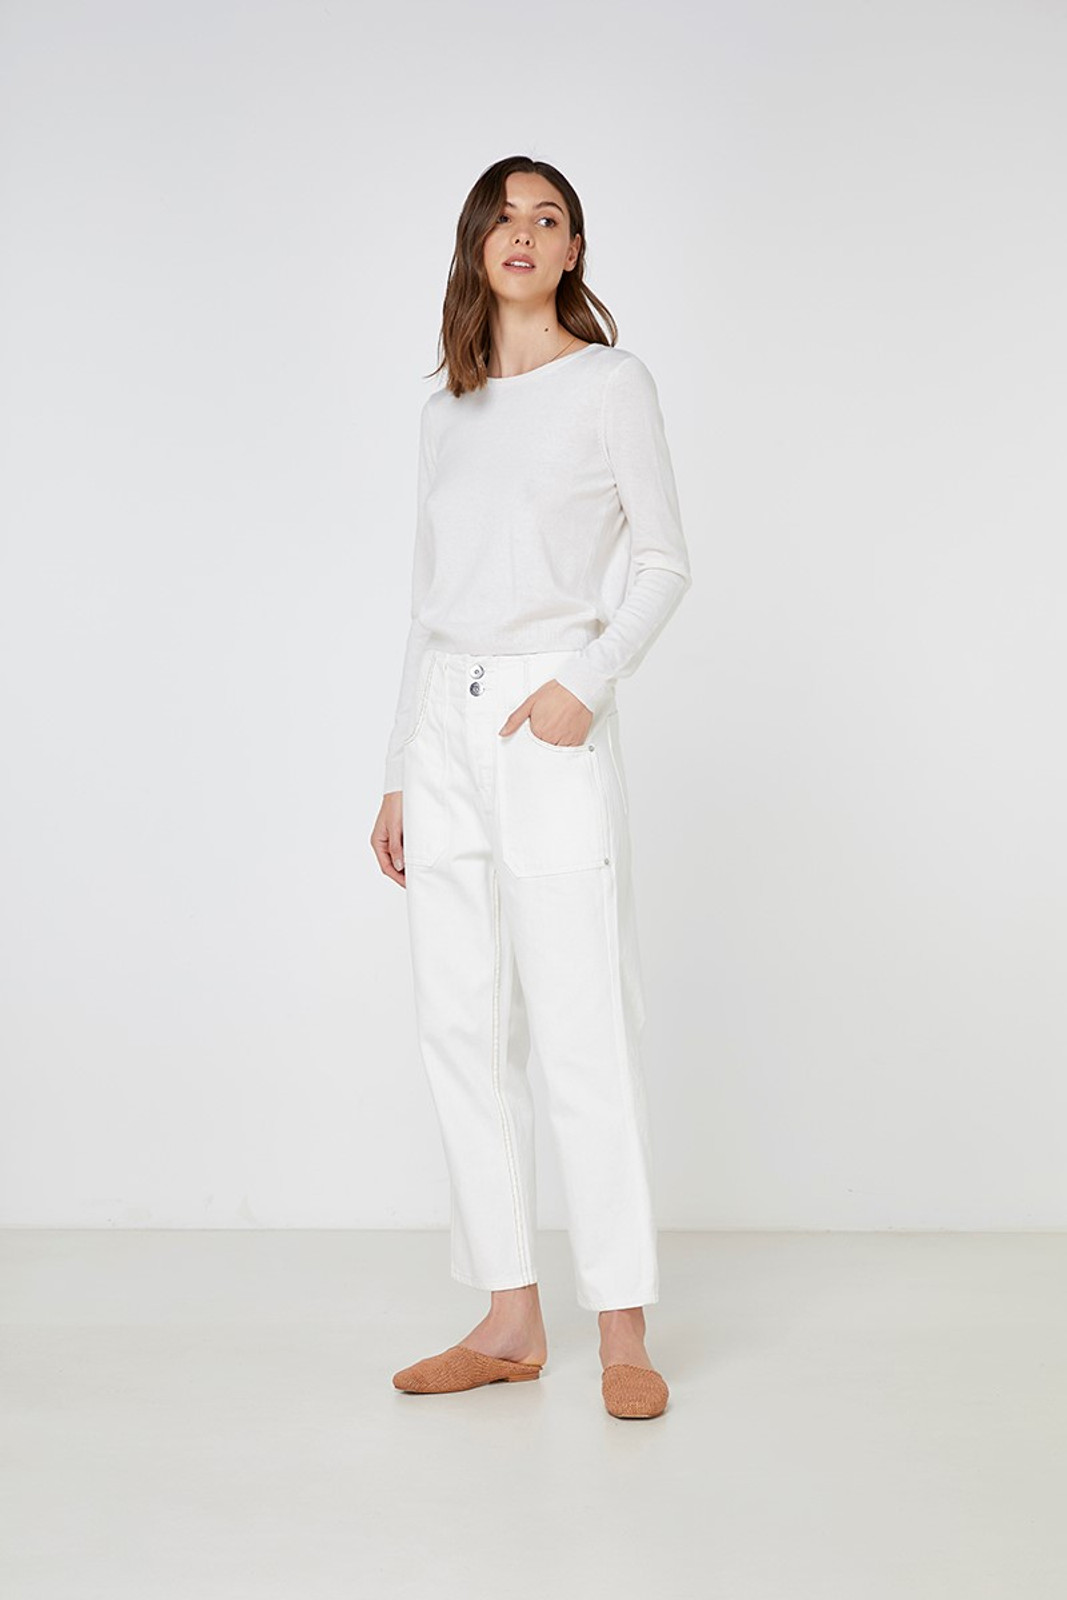 Elka Collective Gale Knit White  1